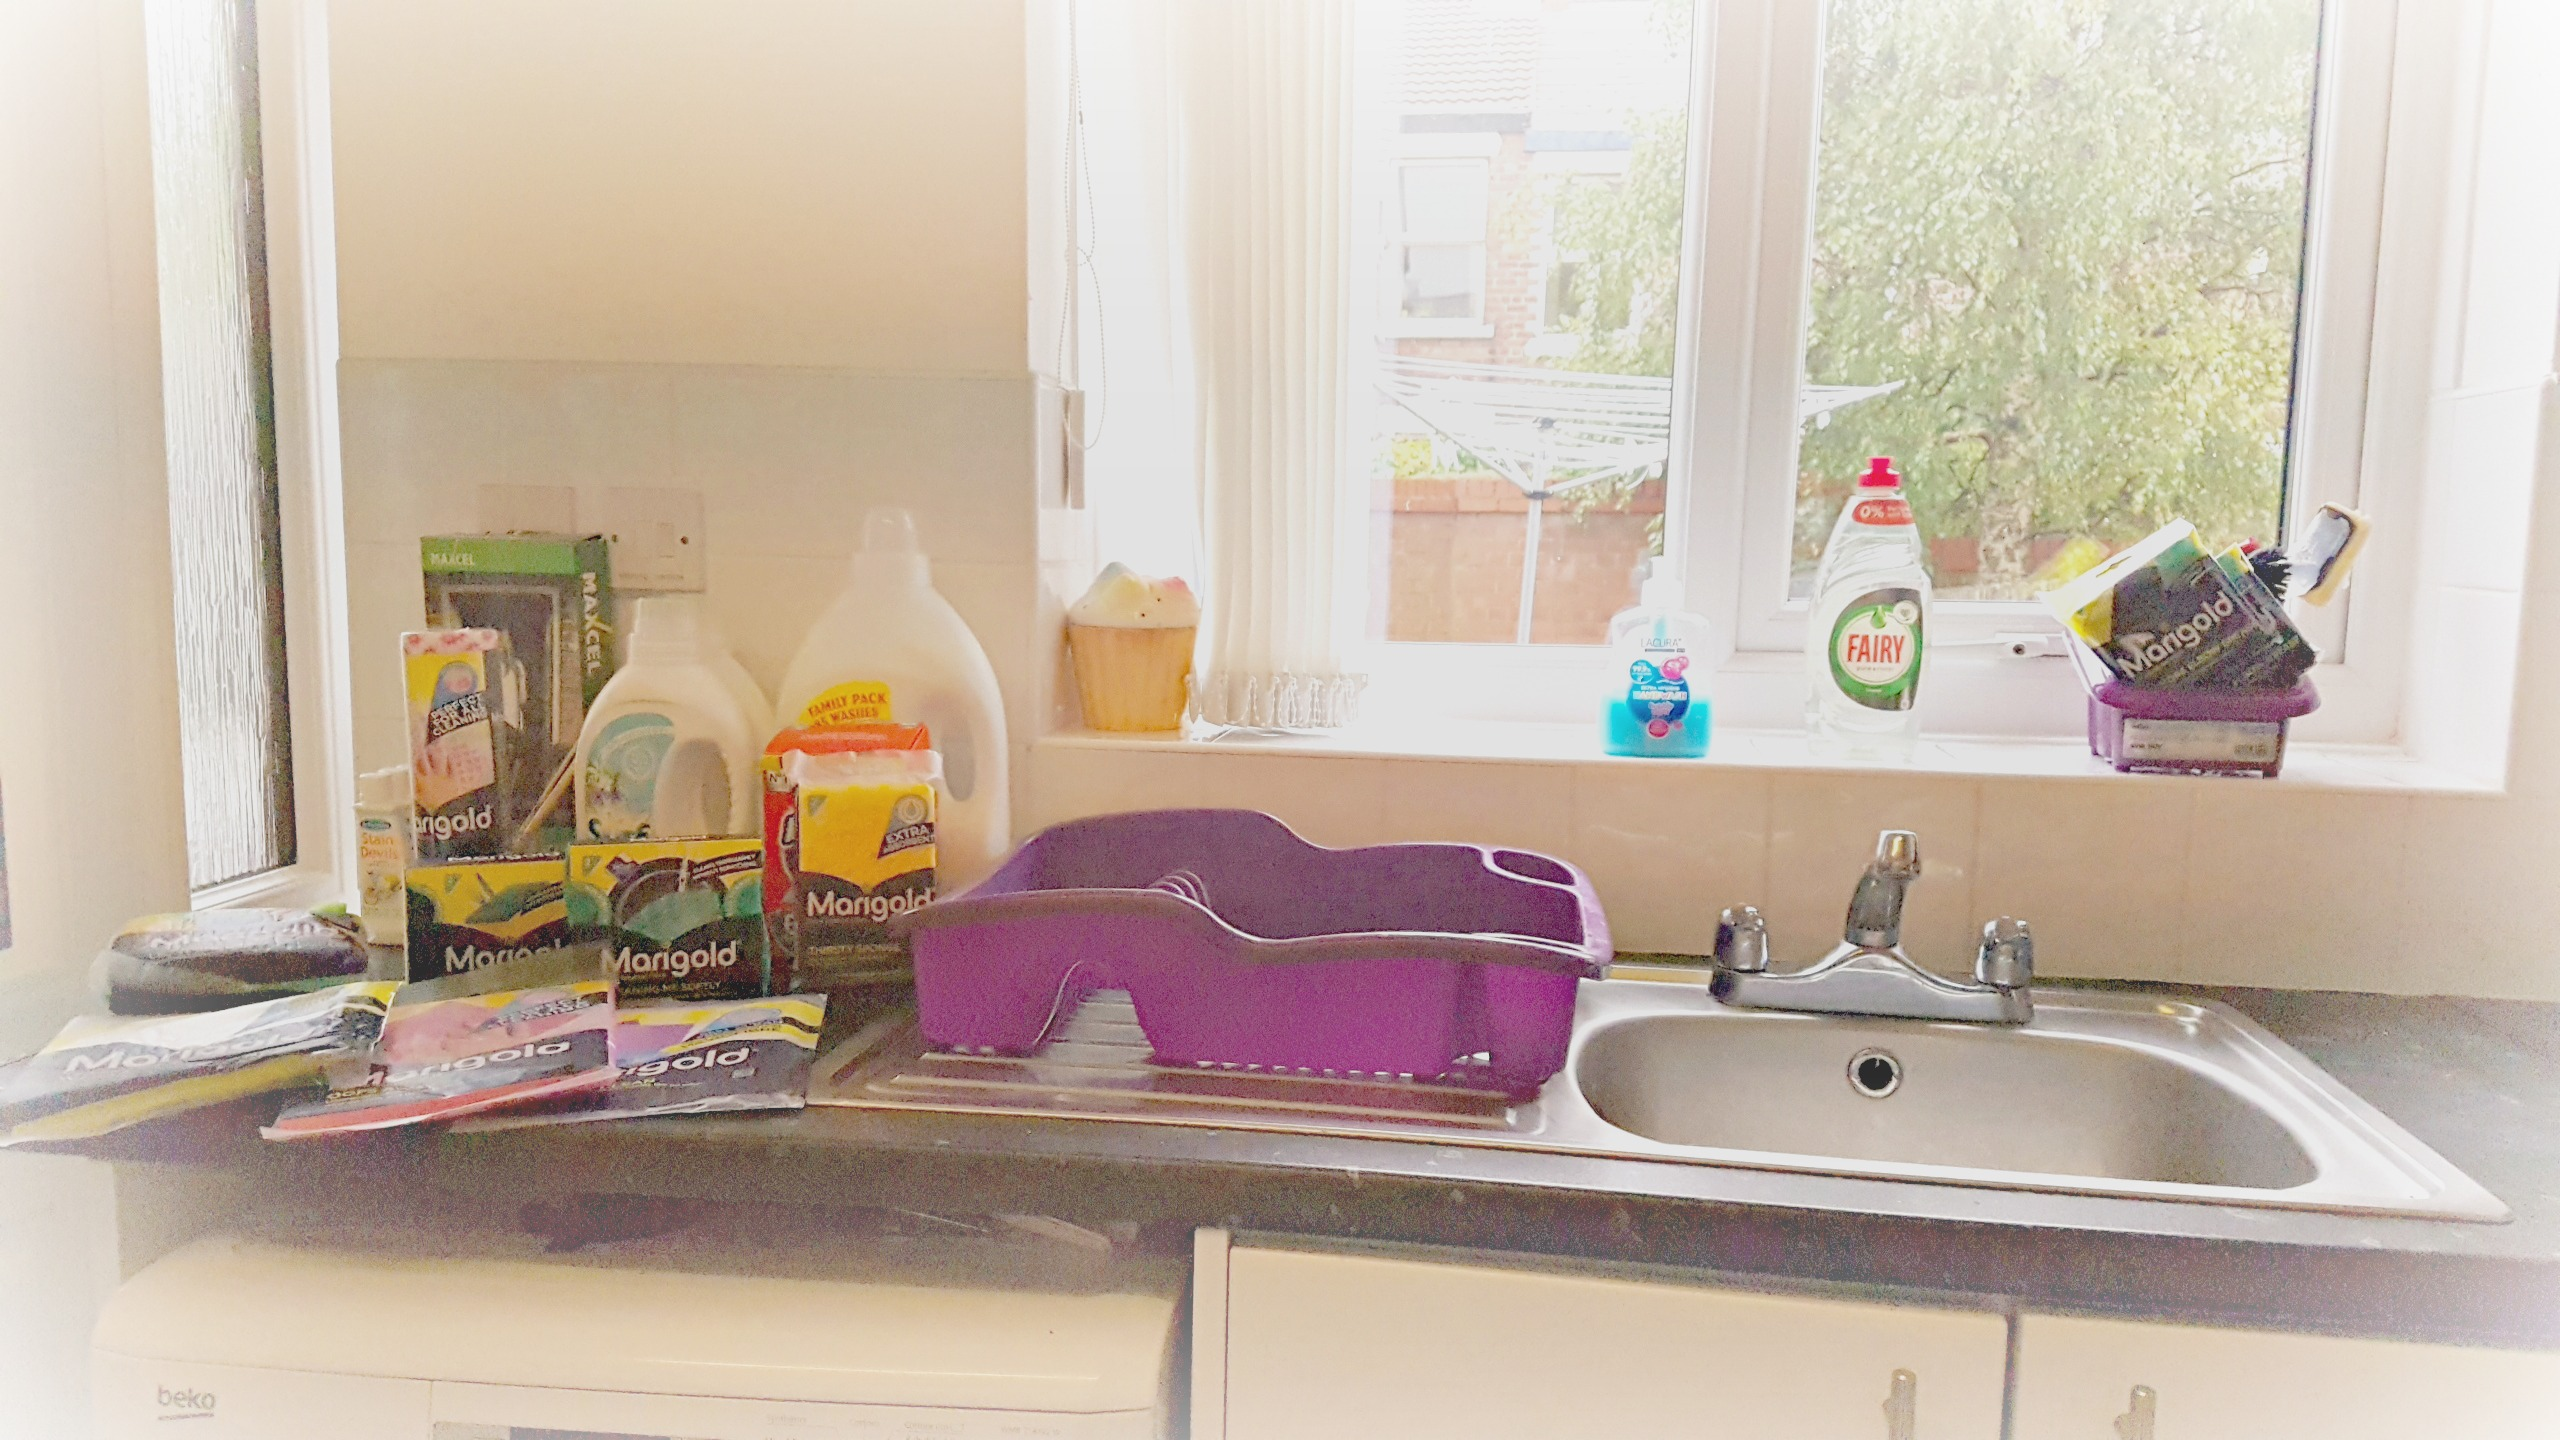 a kitchen sink in fornt of a windwo with marigold cleaning products to the left